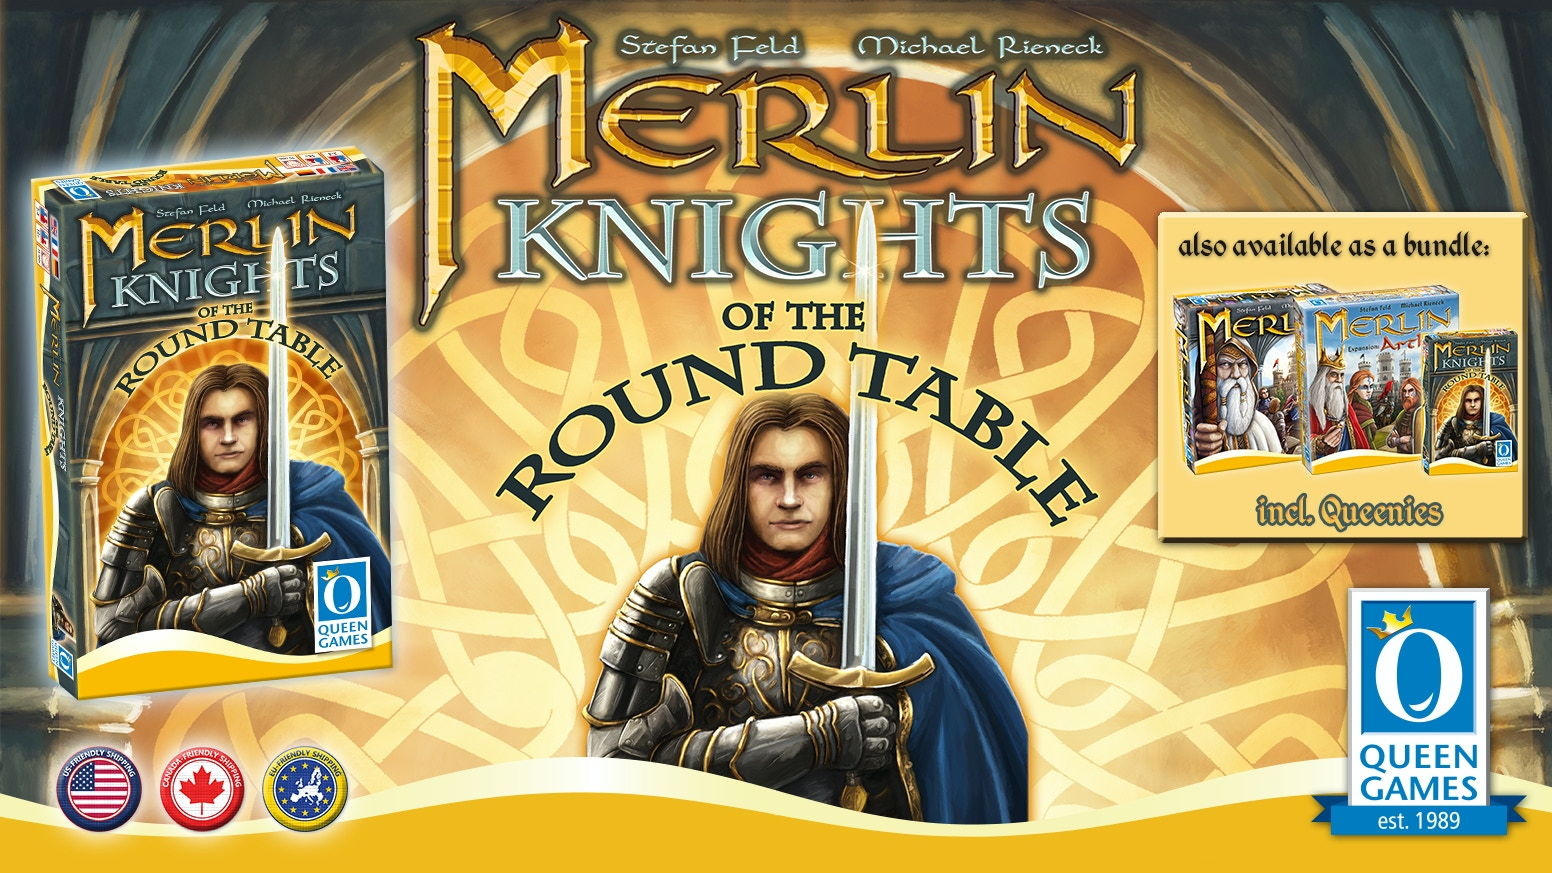 The knights of the round table, powerful allies helping you on your quest to become the new king!